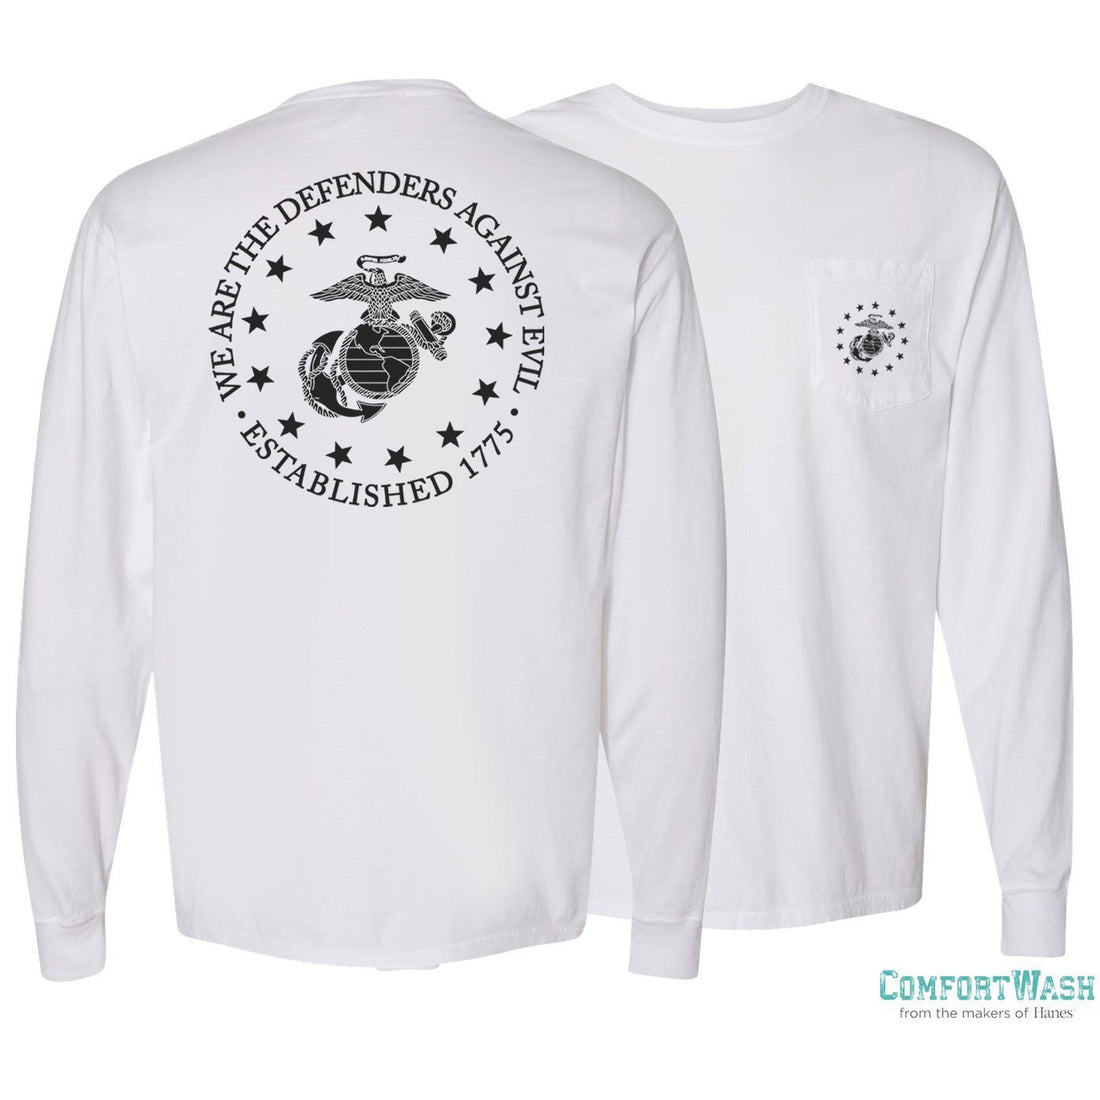 Front and back of the white Marine Corps long sleeve shirt from Marine Corps Direct.